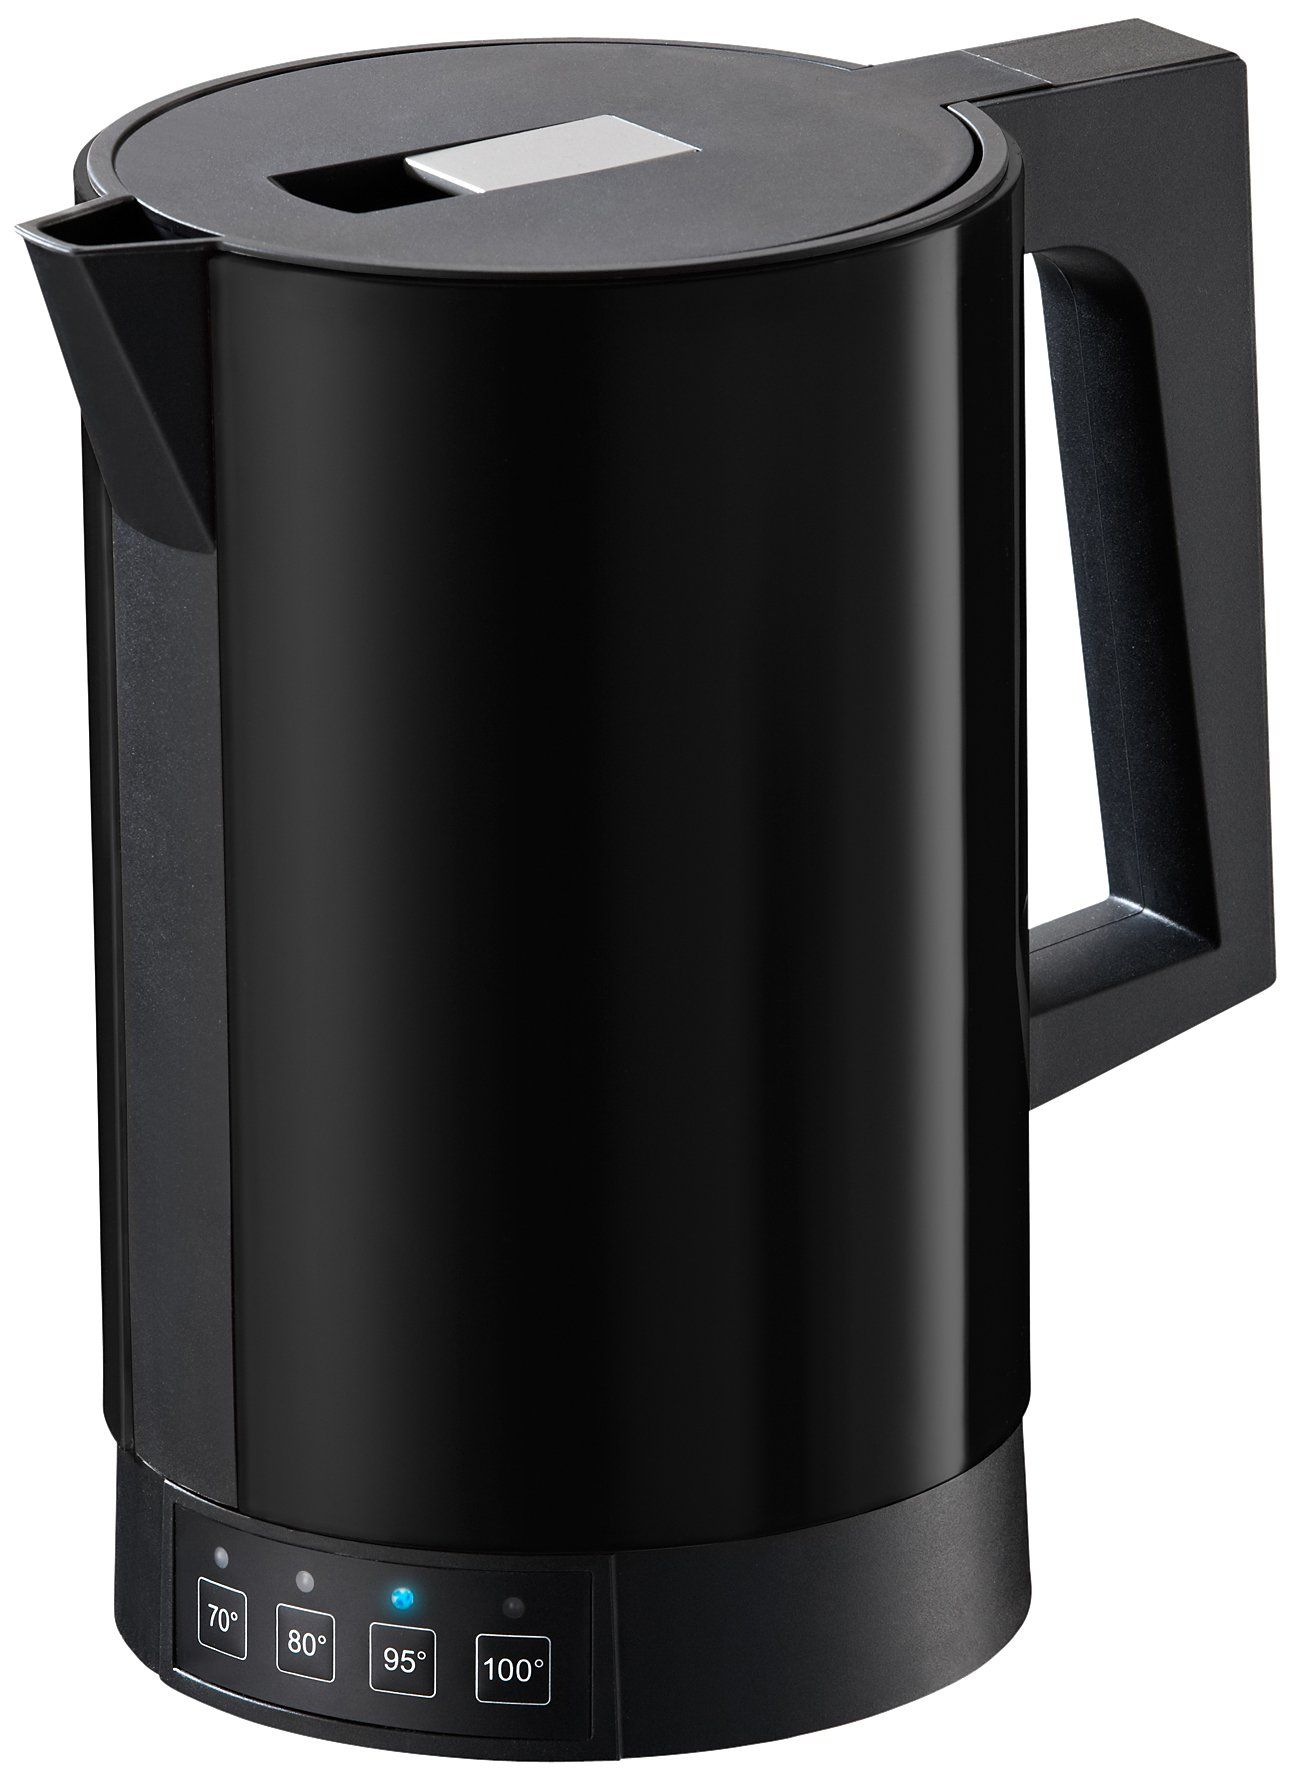 Ritter water kettle fontana 5 with heat-resistant Acrylic ...